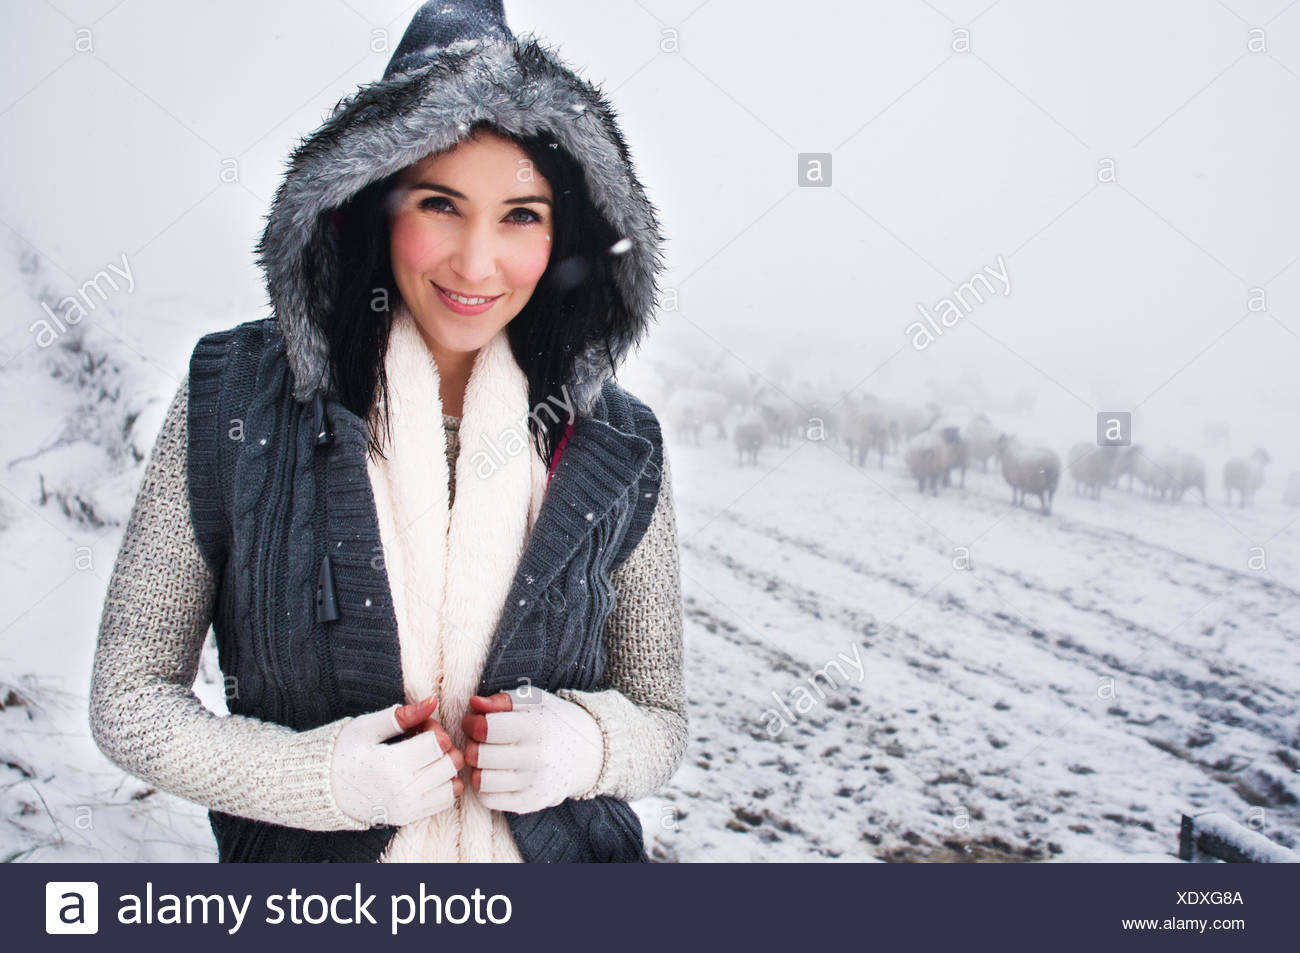 Portrait of smiling woman in snowcapped field - Stock Image